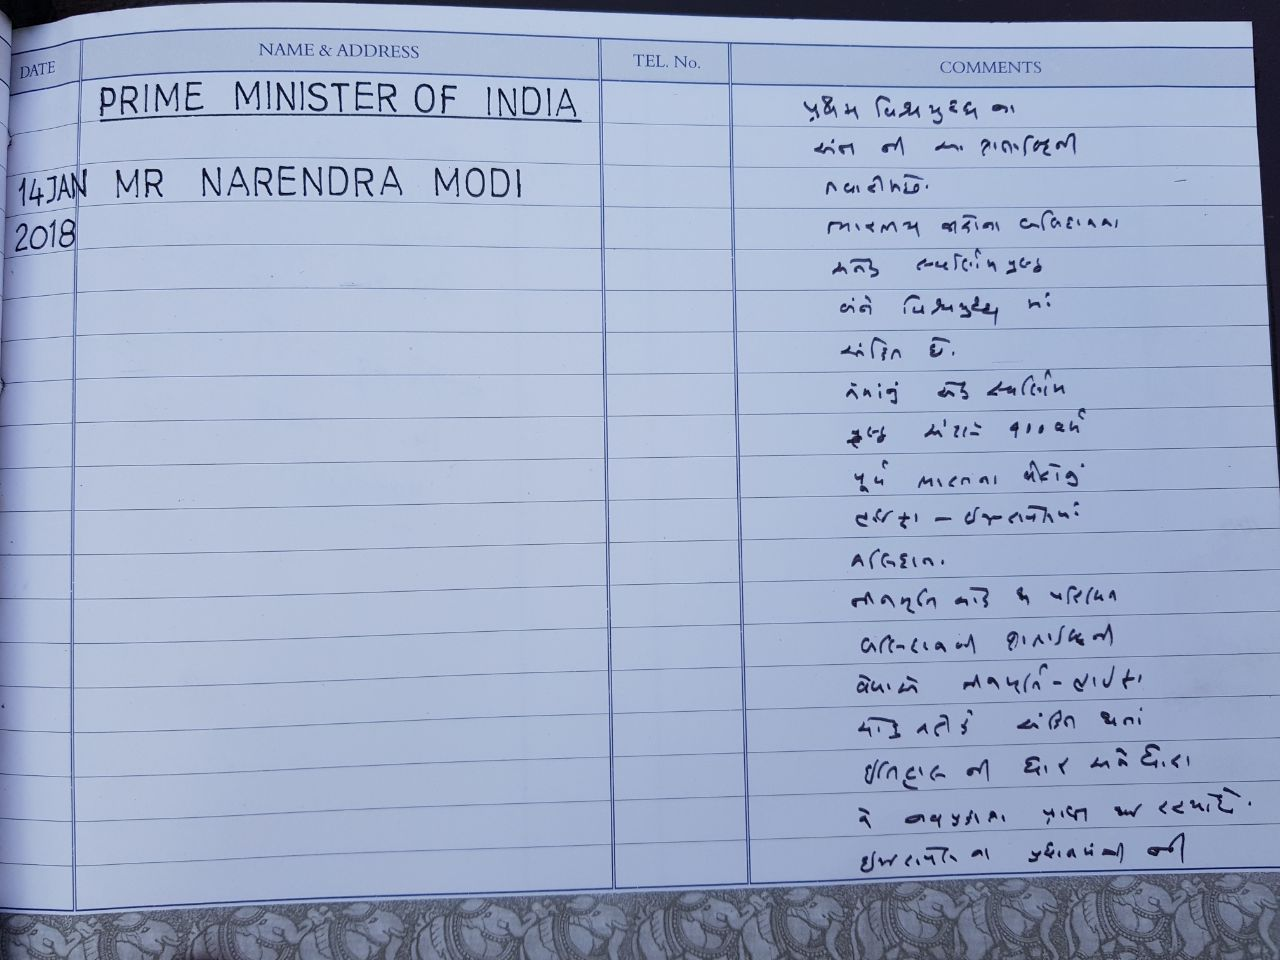 15:27                                      Here is what Modi wrote in the visitor's book at Teen Murti chowk